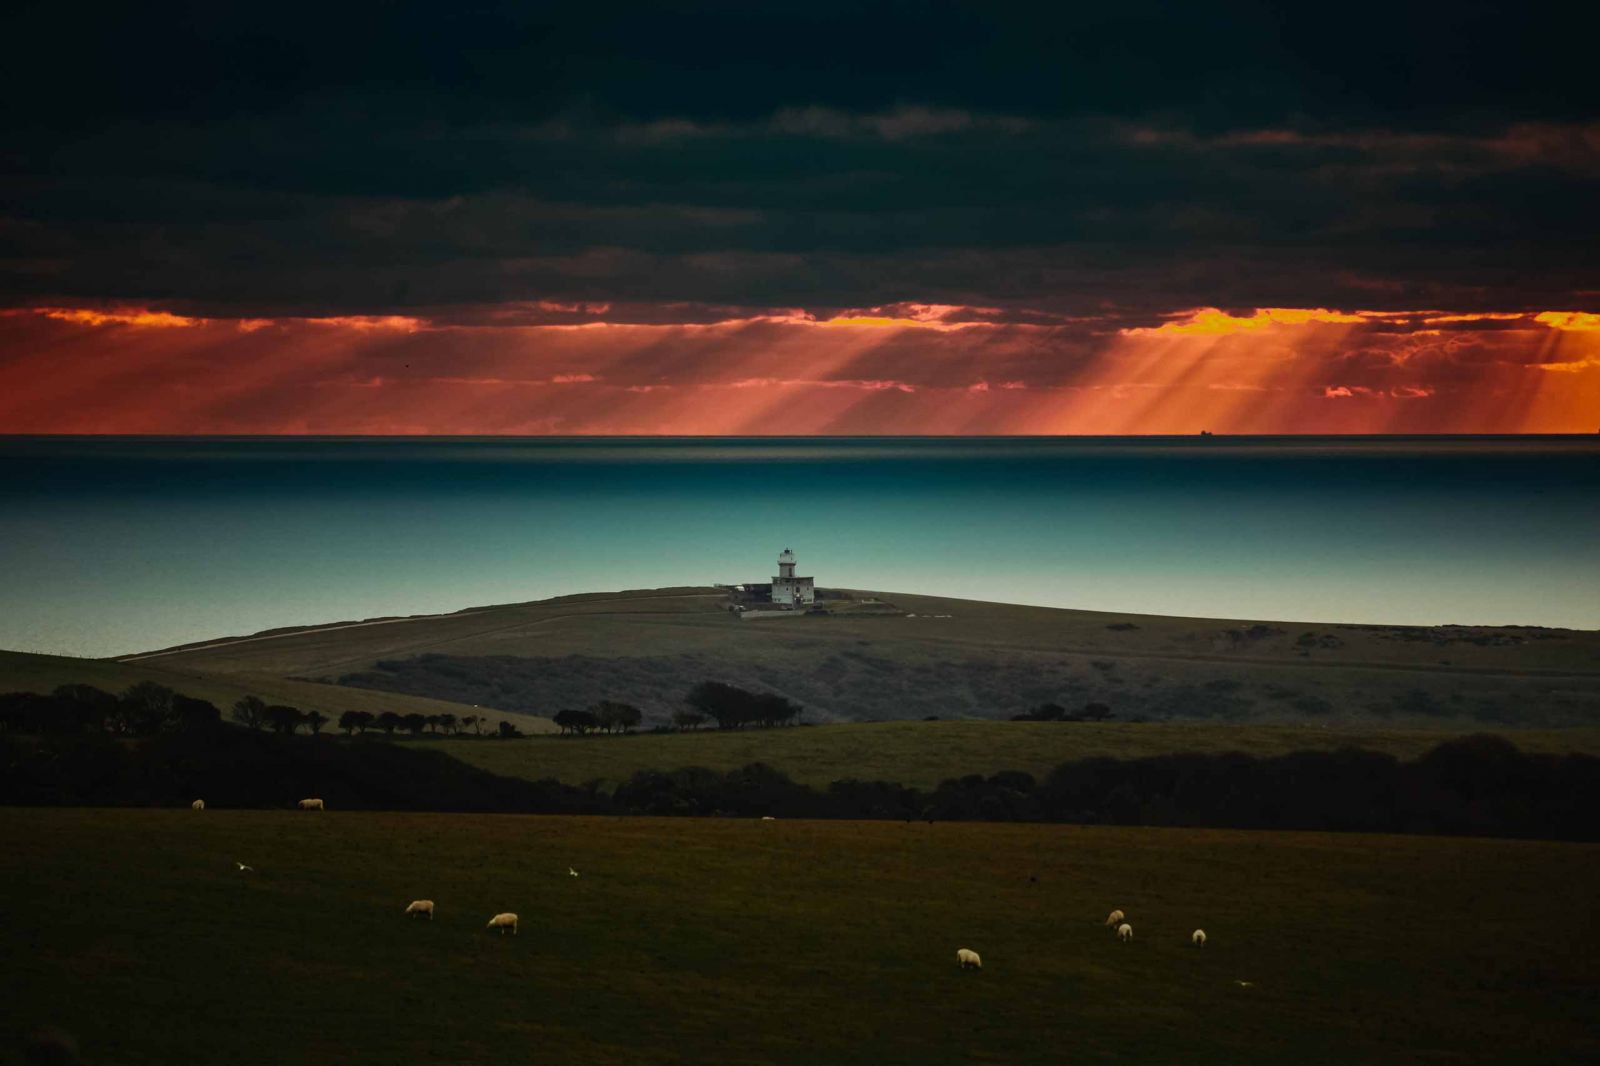 Belle Tout lighthouse shot across the South Downs towards the sea at sunset